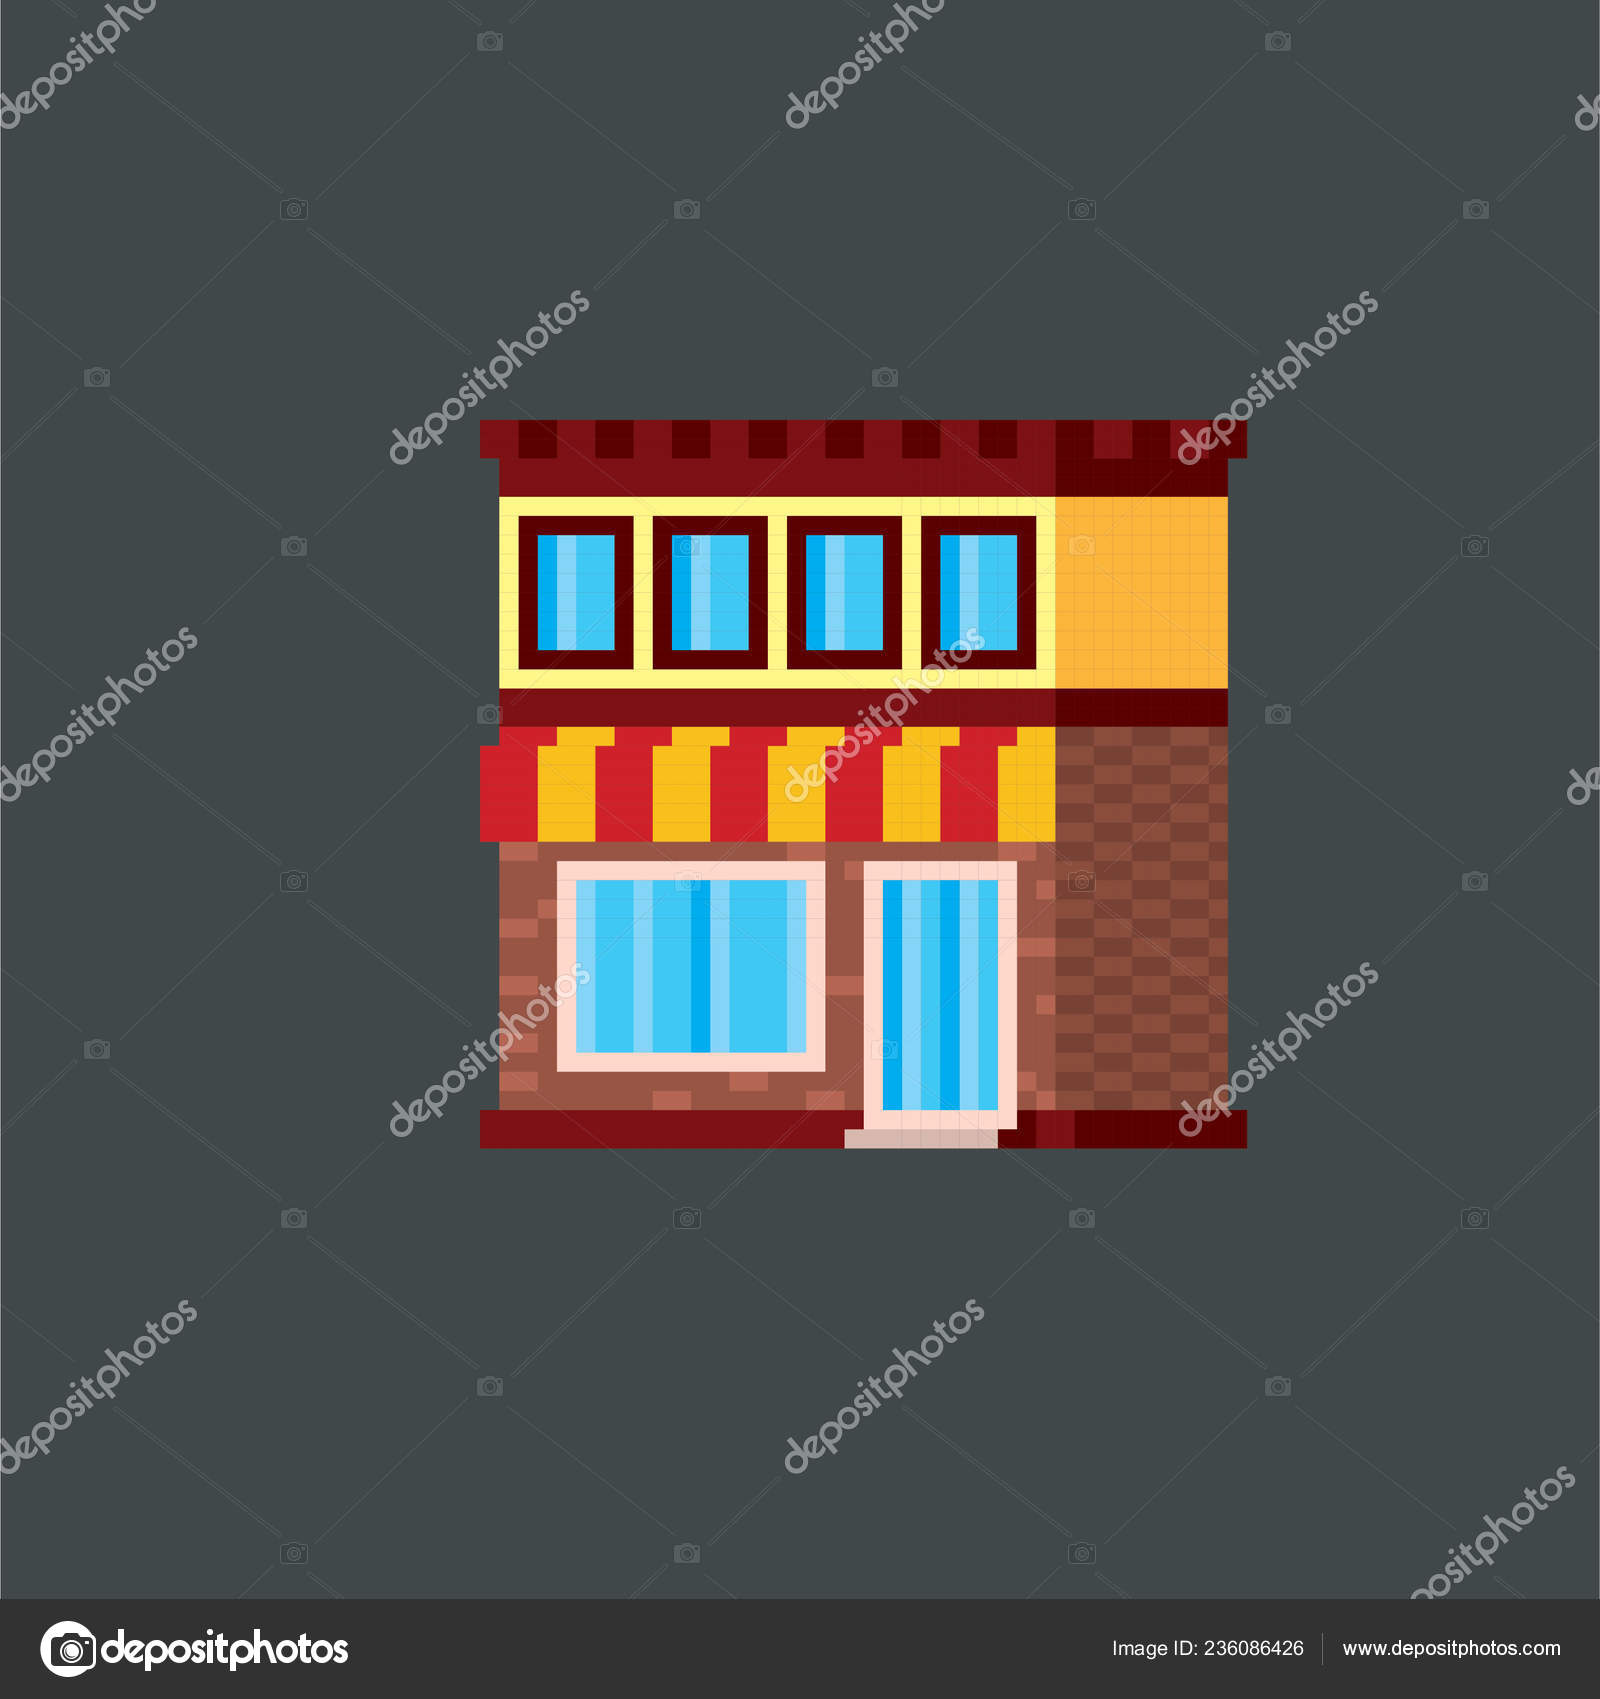 Shop, store, street city building  Pixel art  Old school